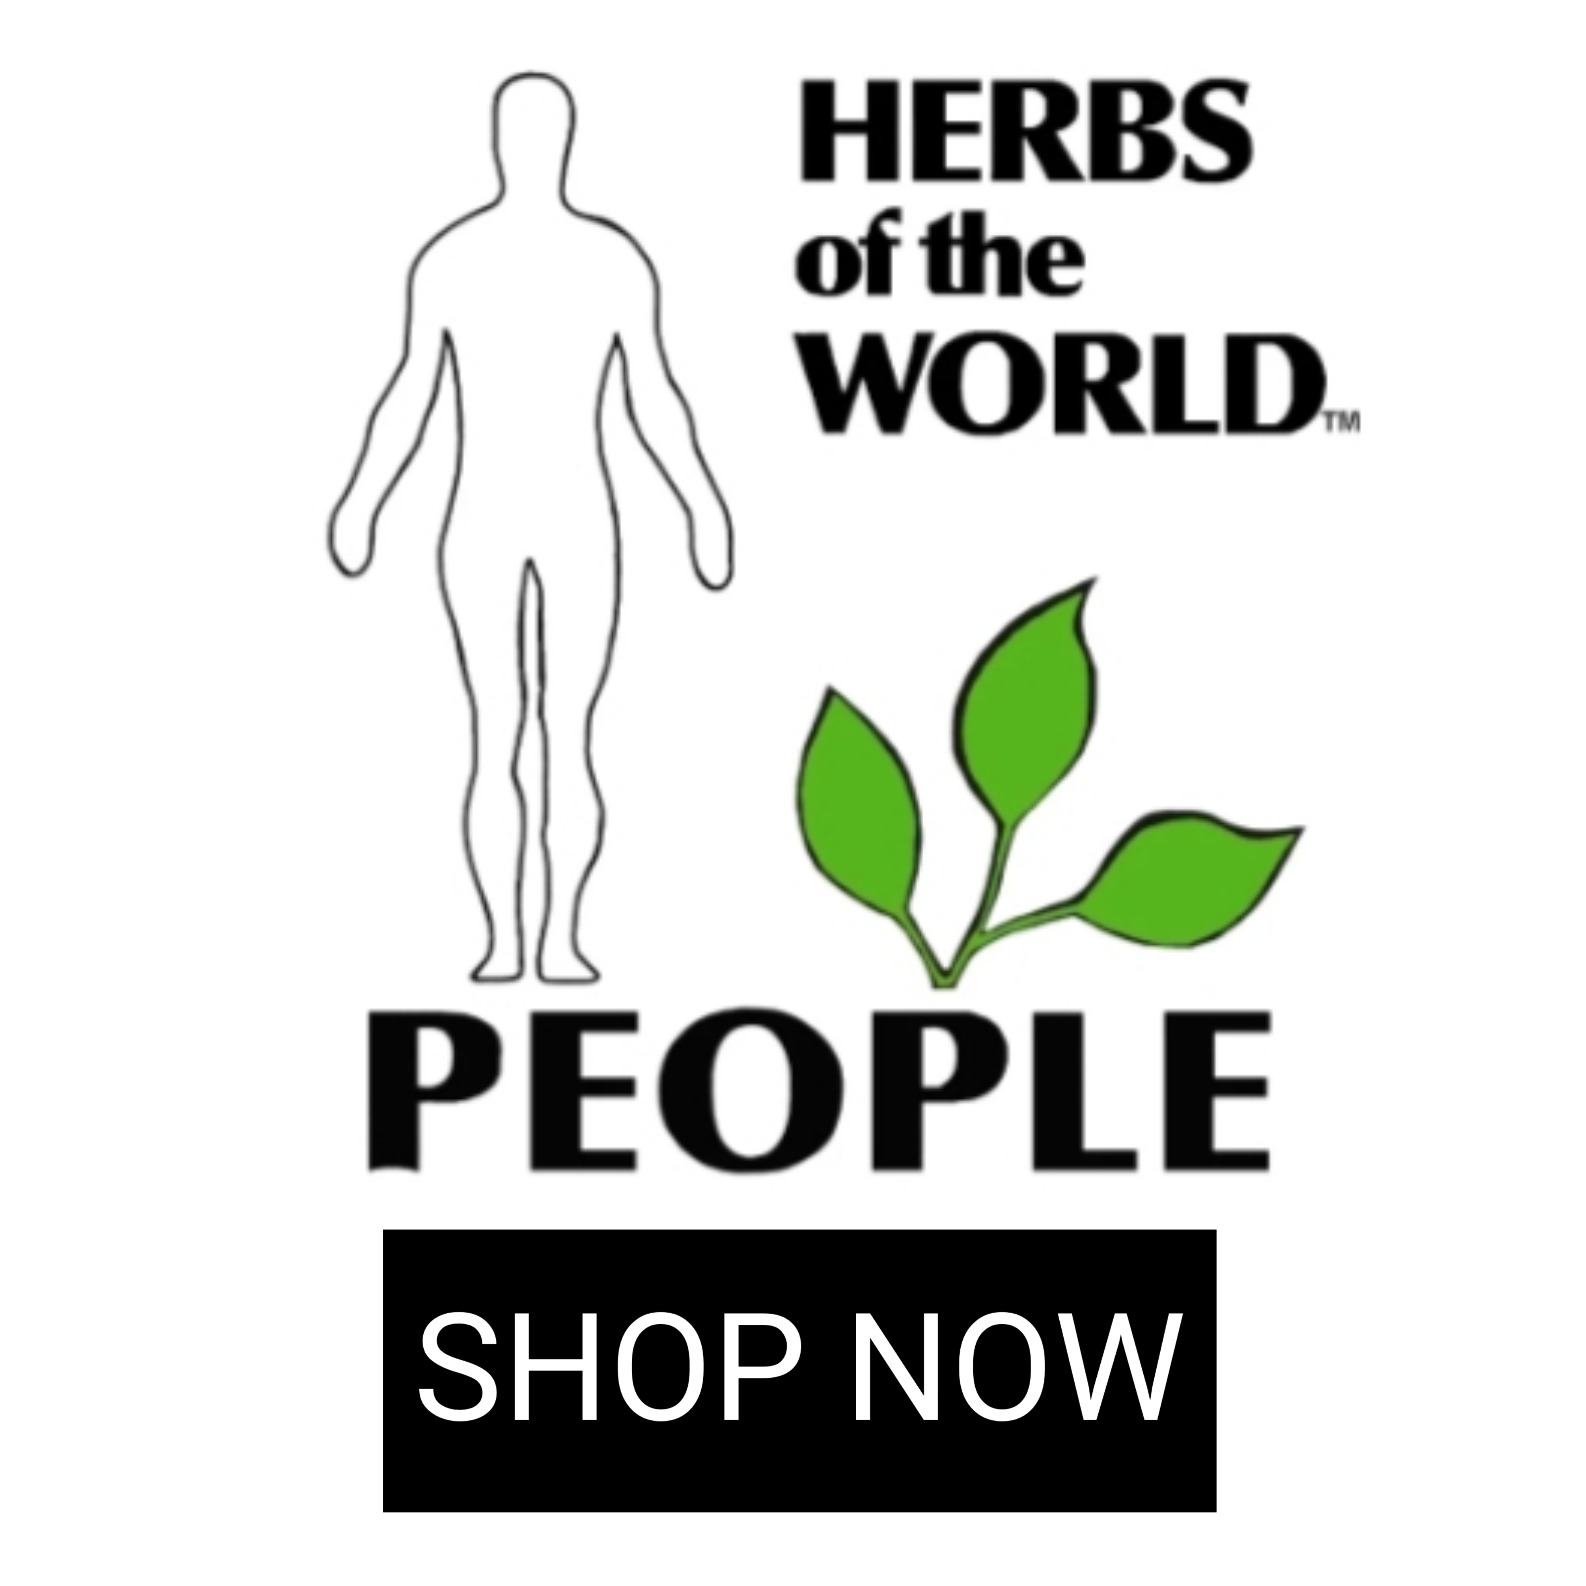 HERBS for PEOPLE